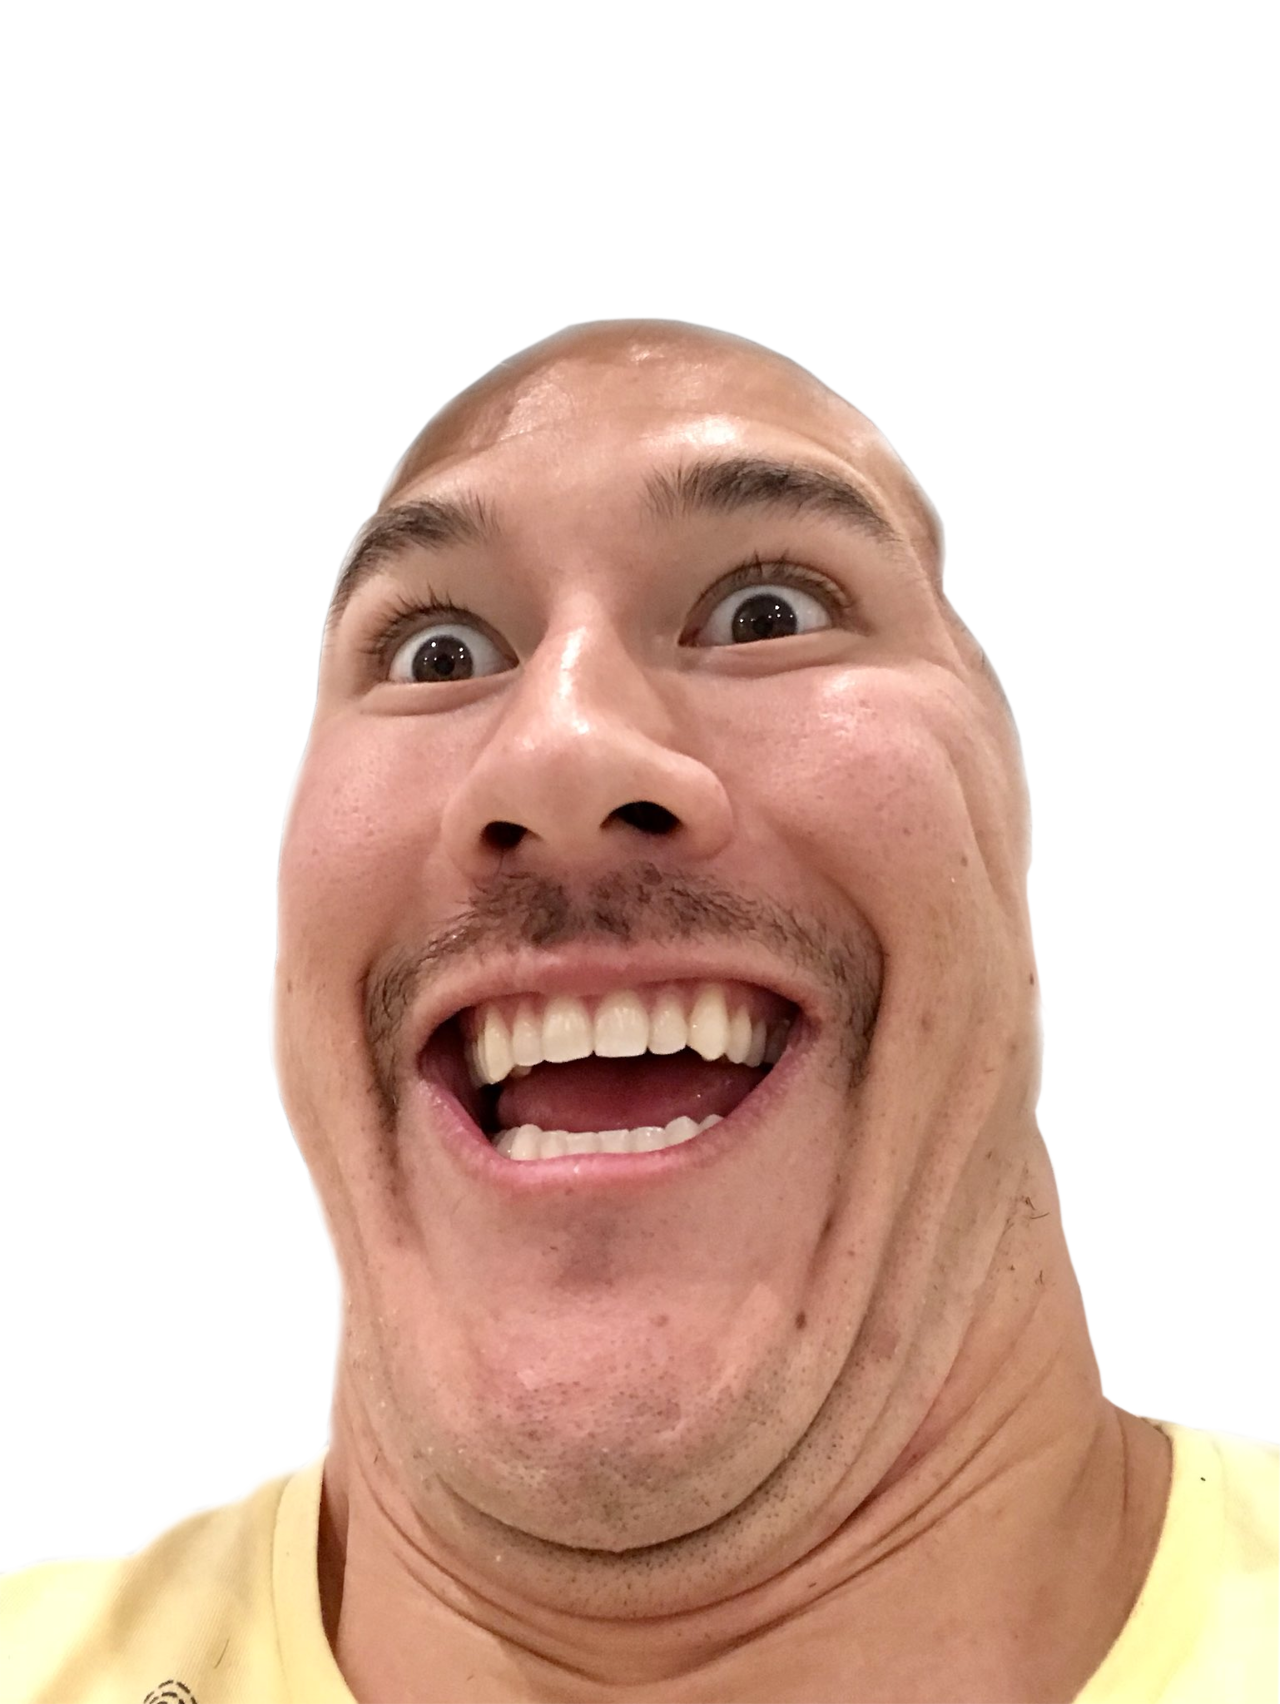 Jacksepticeye face png. Photoshop away markiplier and